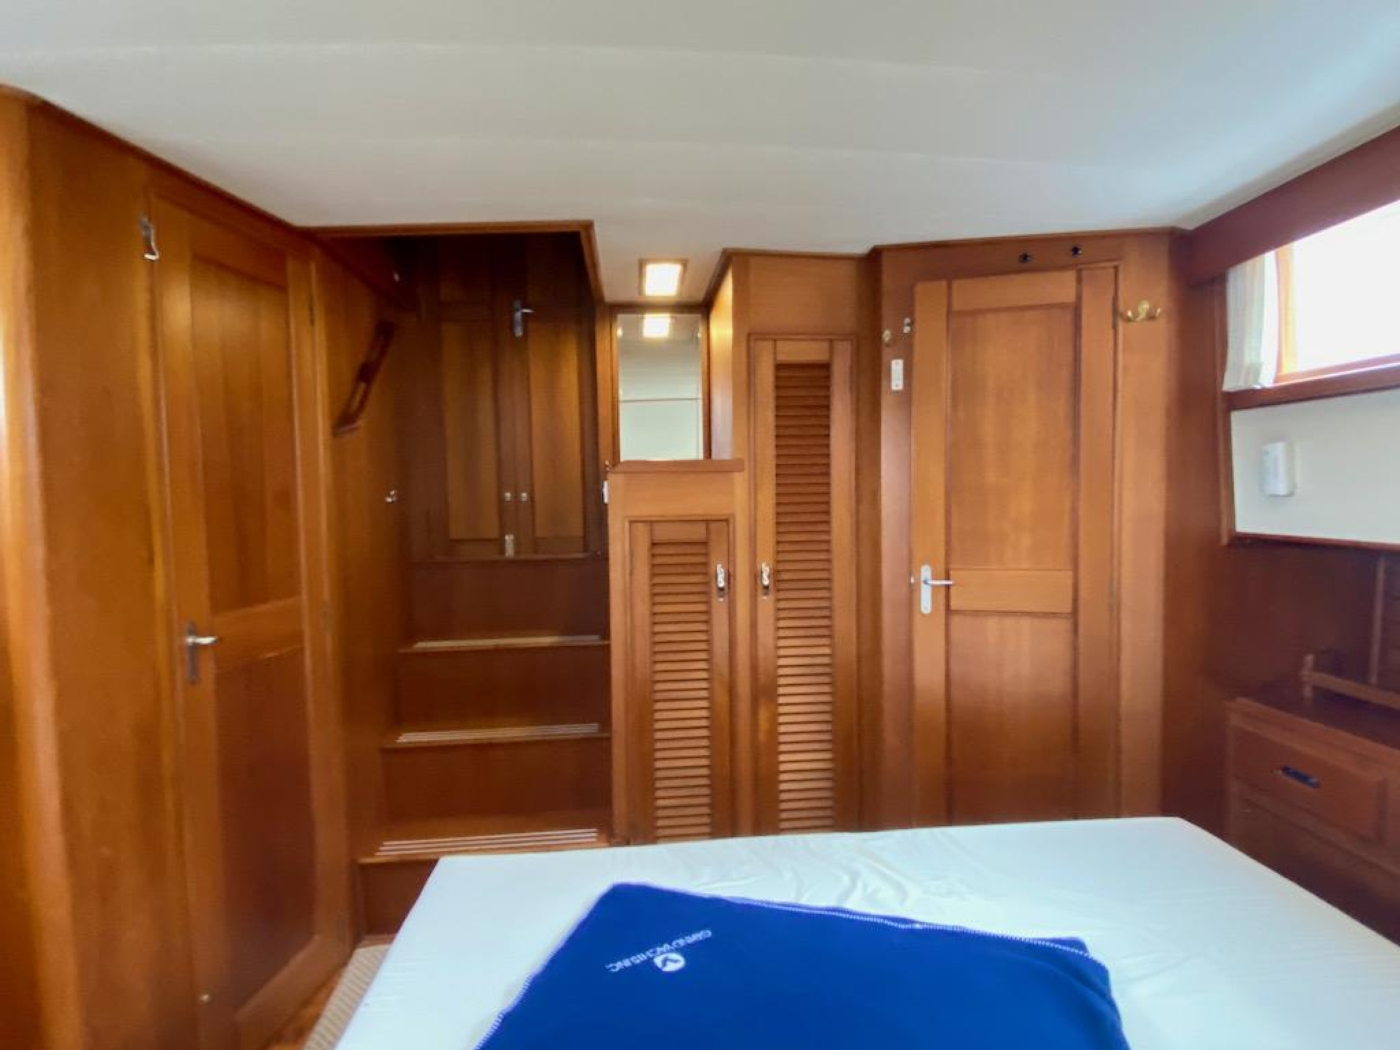 1998 Grand Banks 42 Classic, Aft cabin looking fwd